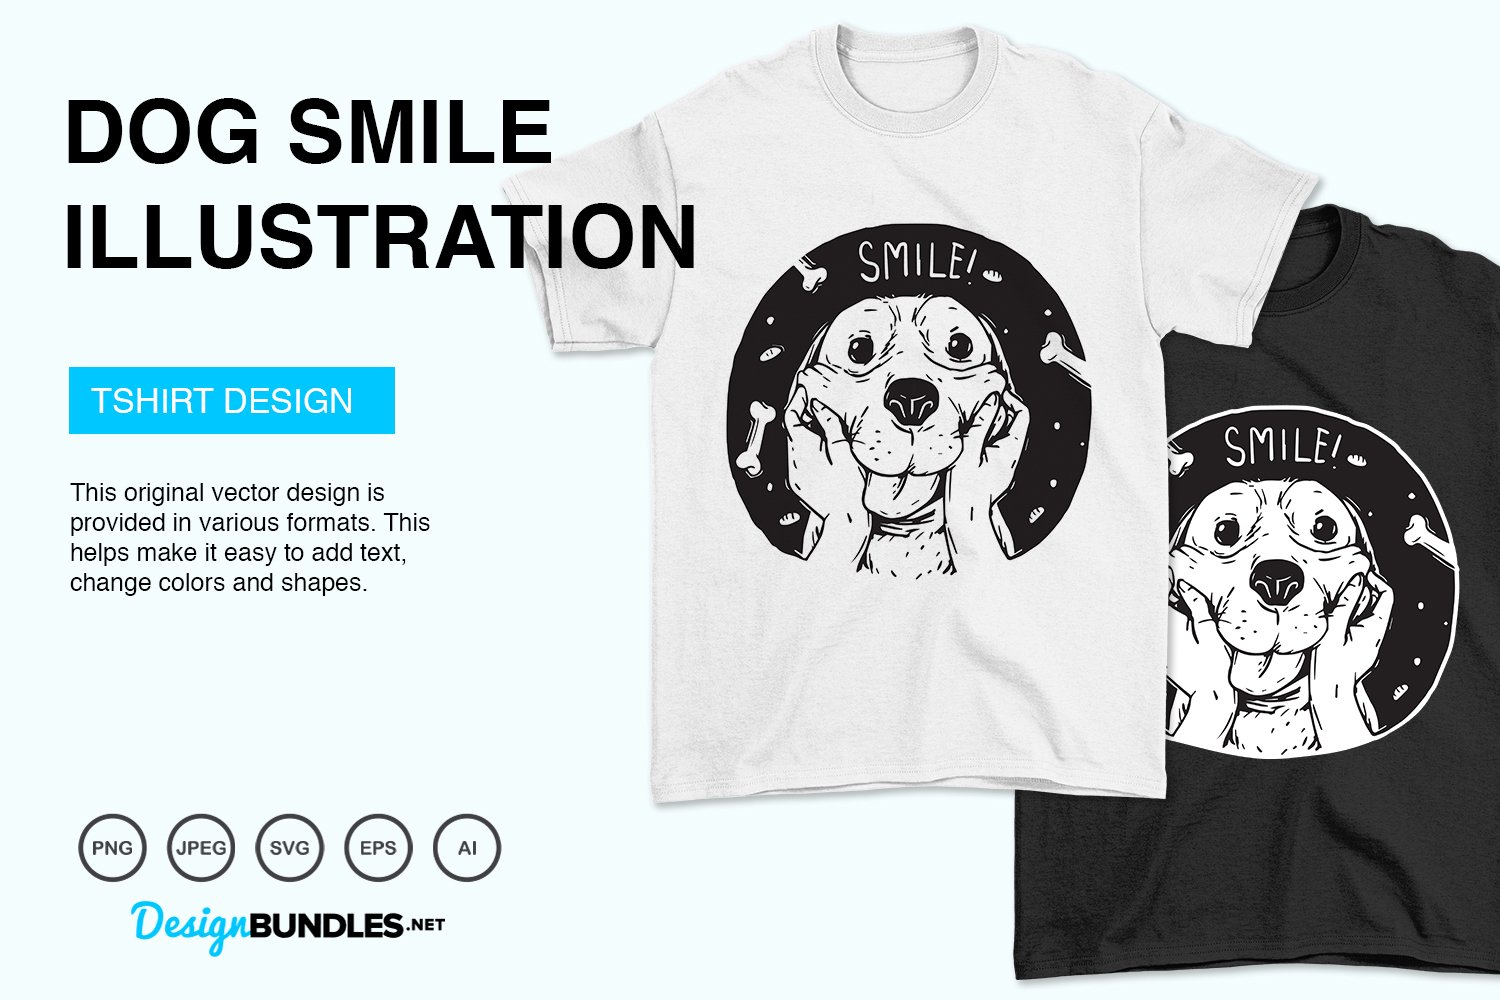 Dog Smile Vector Illustration example image 2